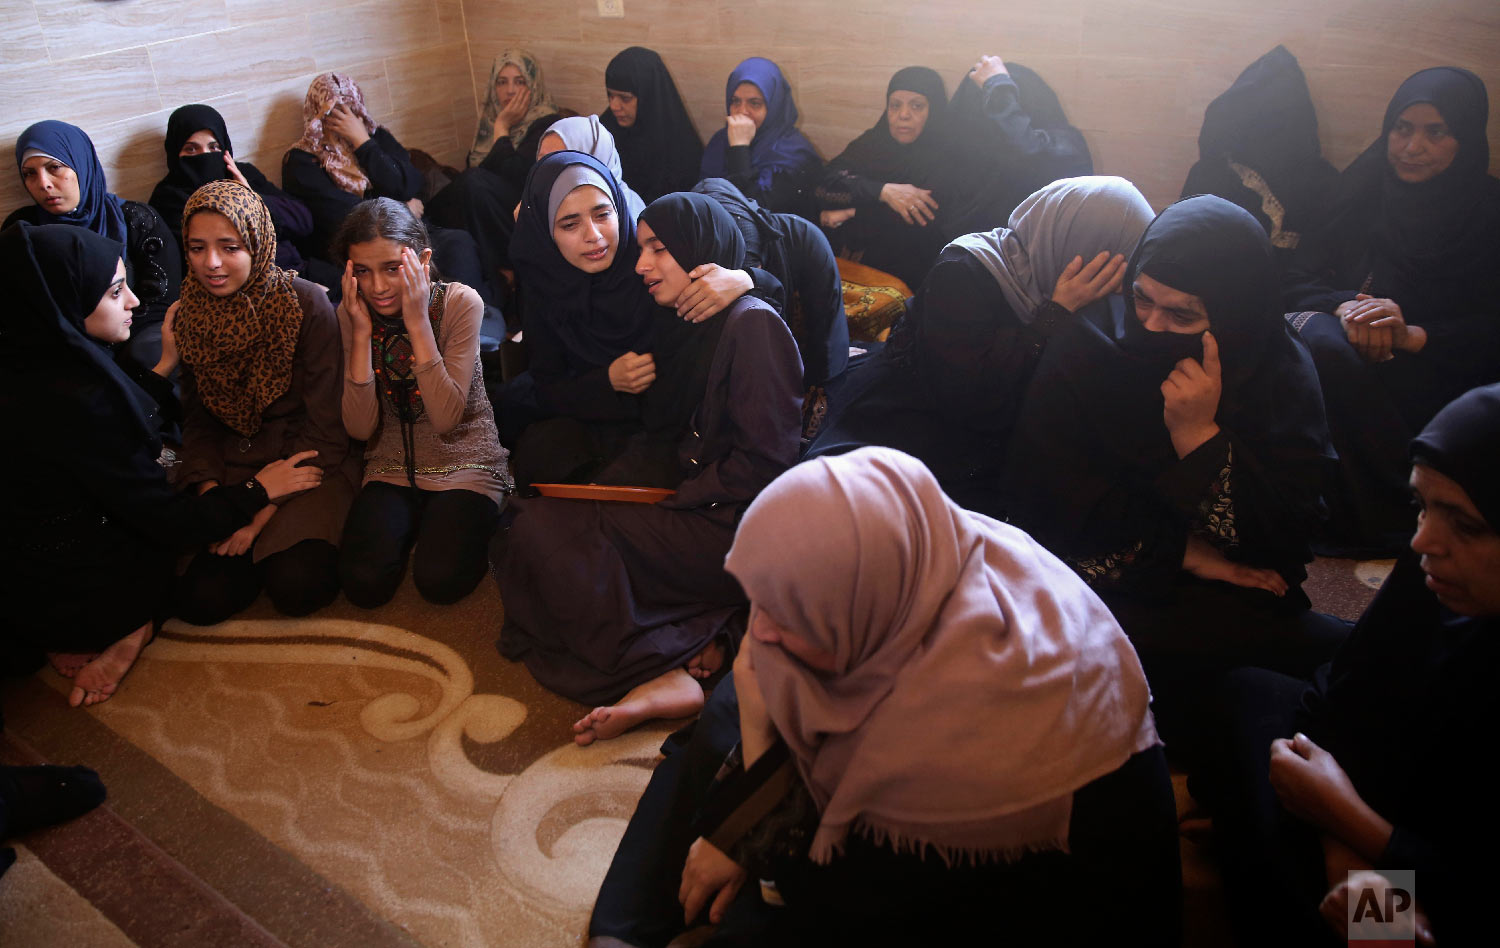 Relatives mourn while waiting for the body of 15-year-old Palestinian Moumin Abu Eiada, during his funeral at his family house in Rafah, southern Gaza Strip, Sept. 20, 2018. (AP Photo/Adel Hana)